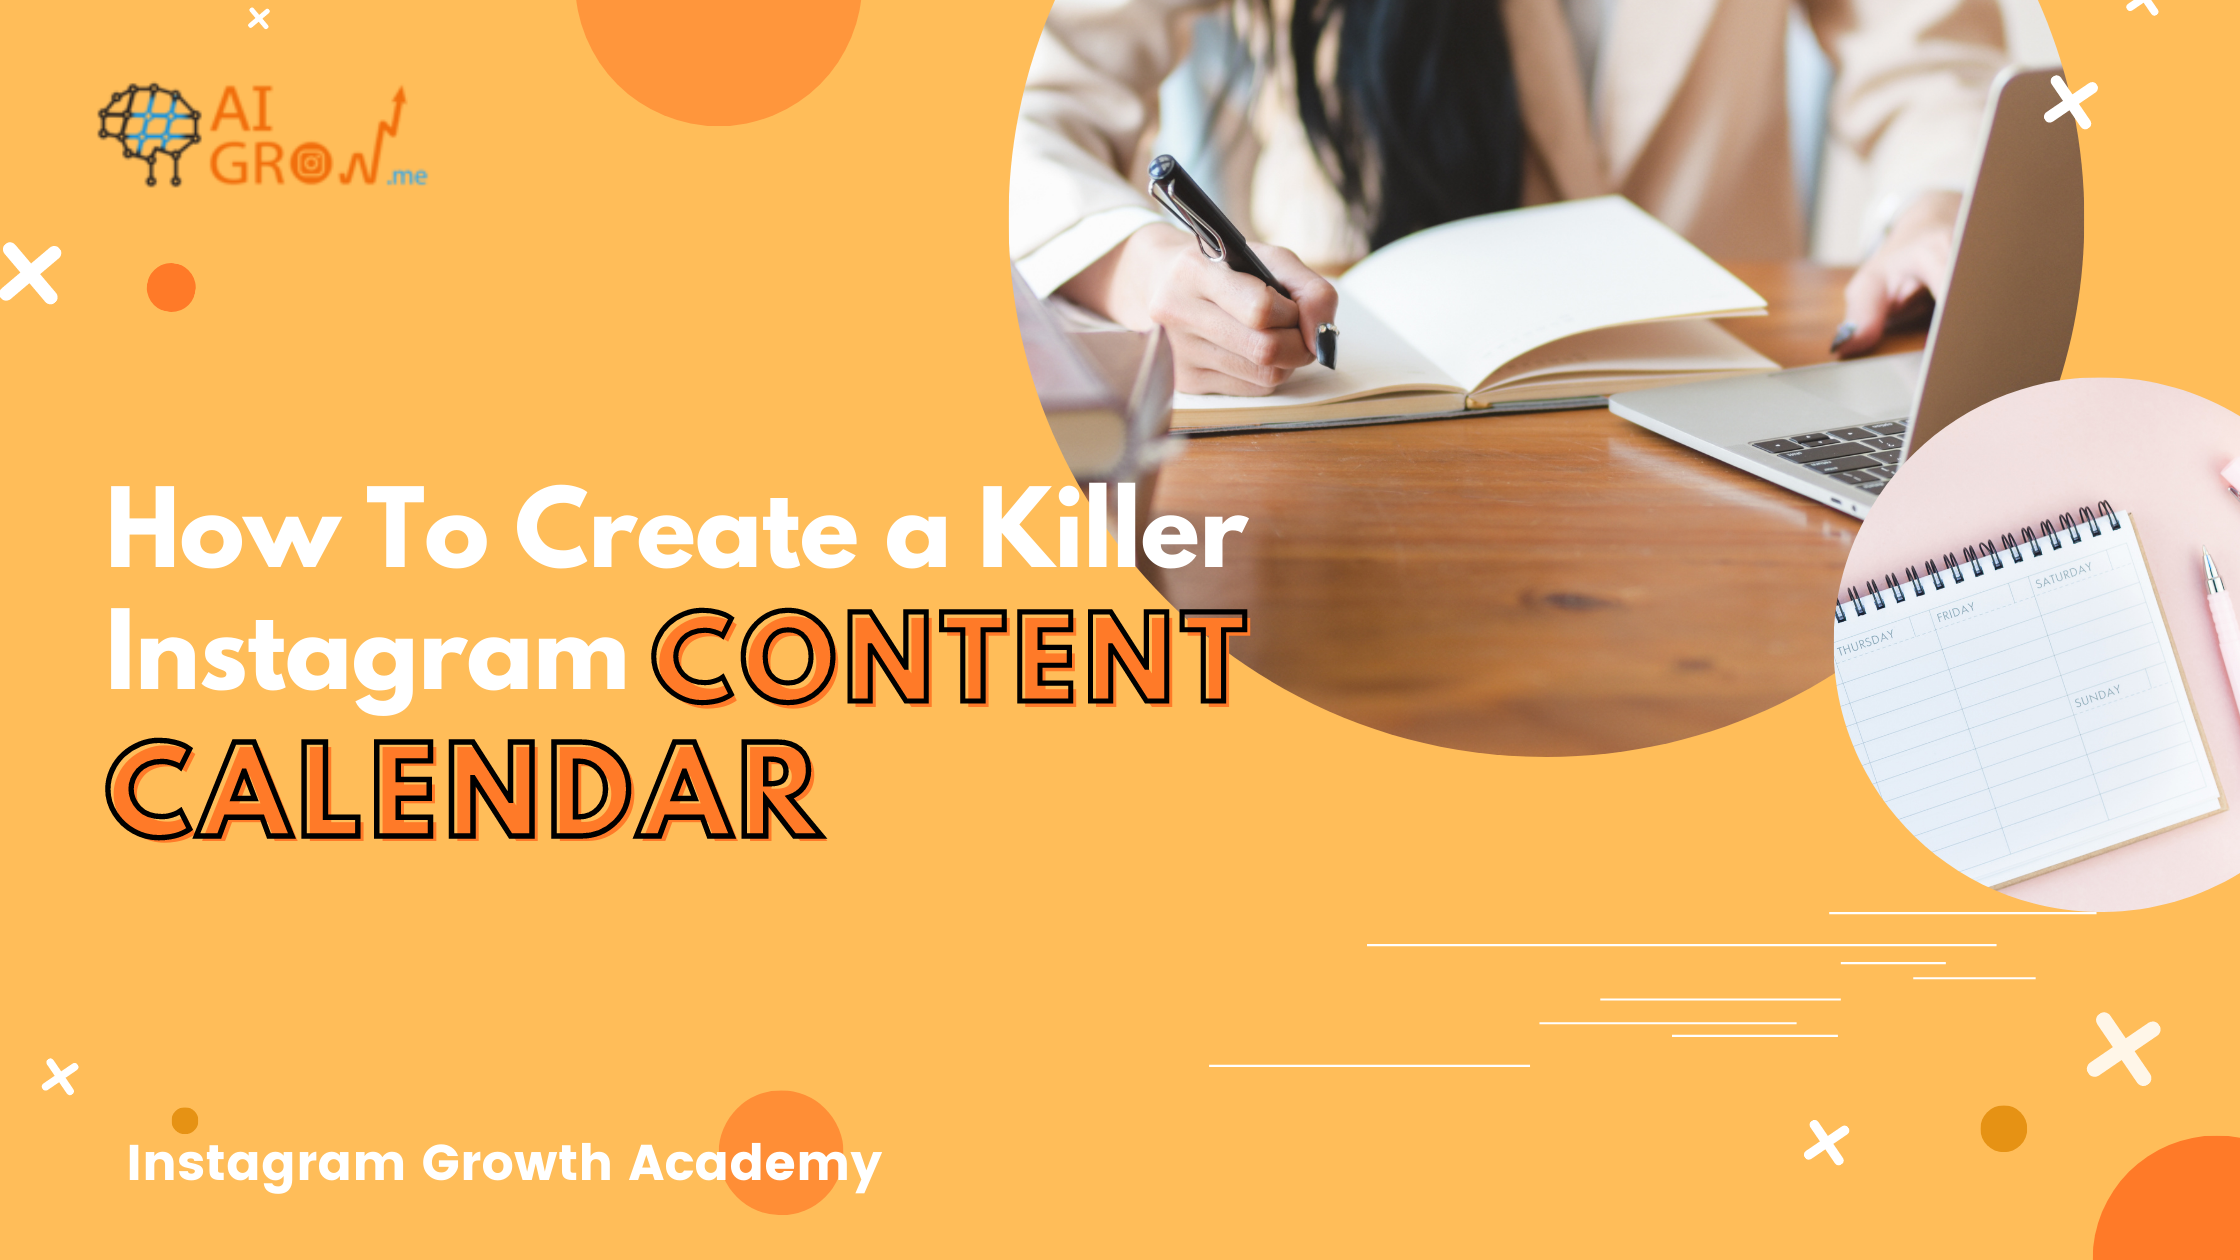 A detailed guide to creating a killer Instagram content calendar with AiGrow